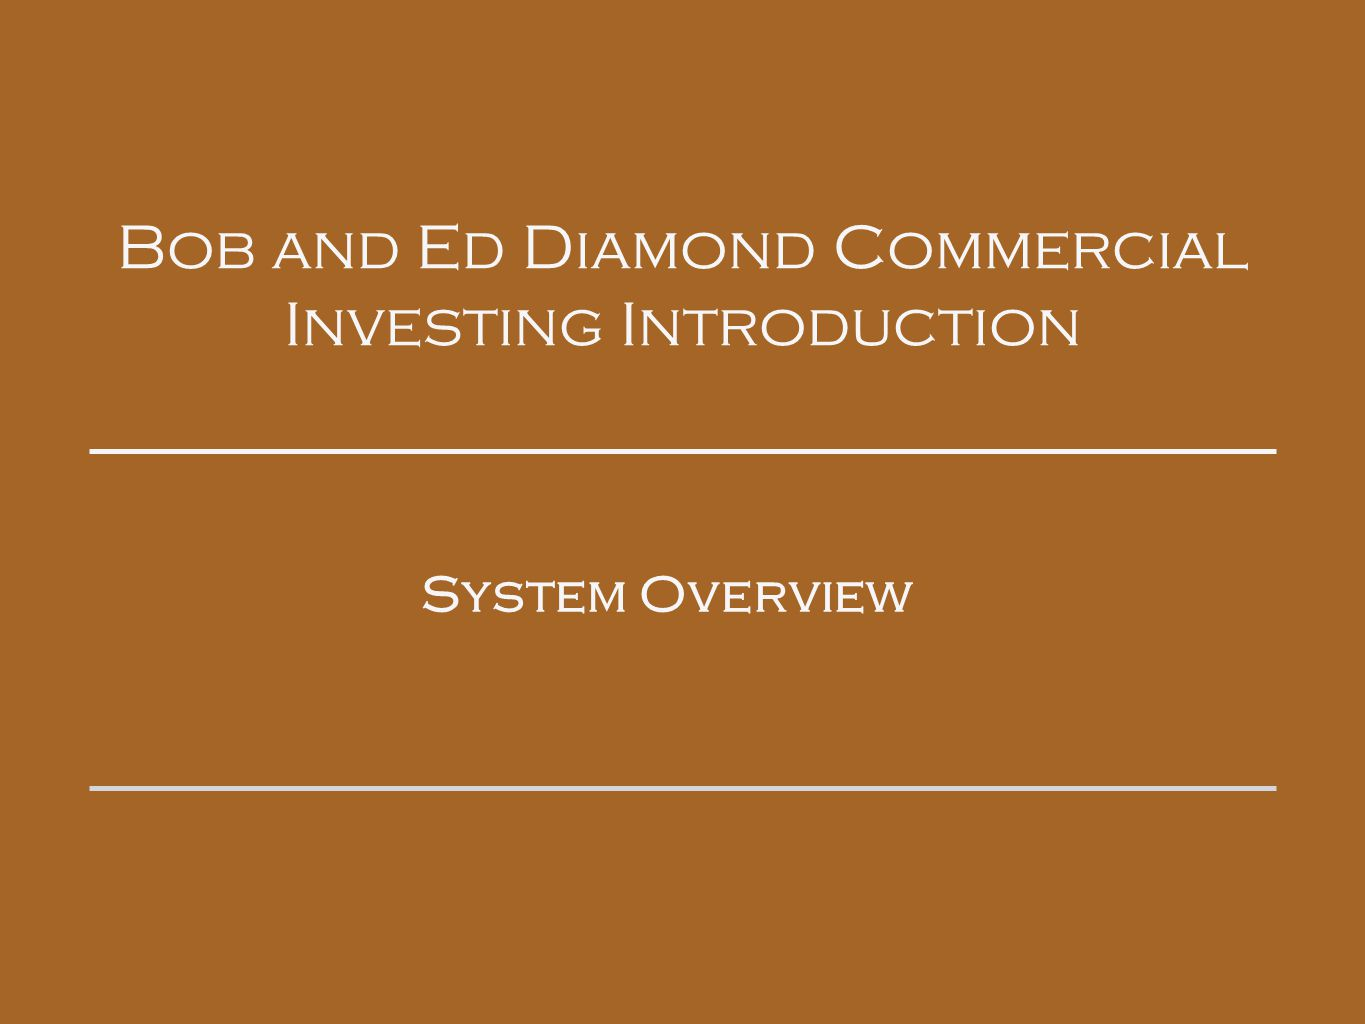 Bob and Ed Diamond Commercial Investing Introduction System Overview